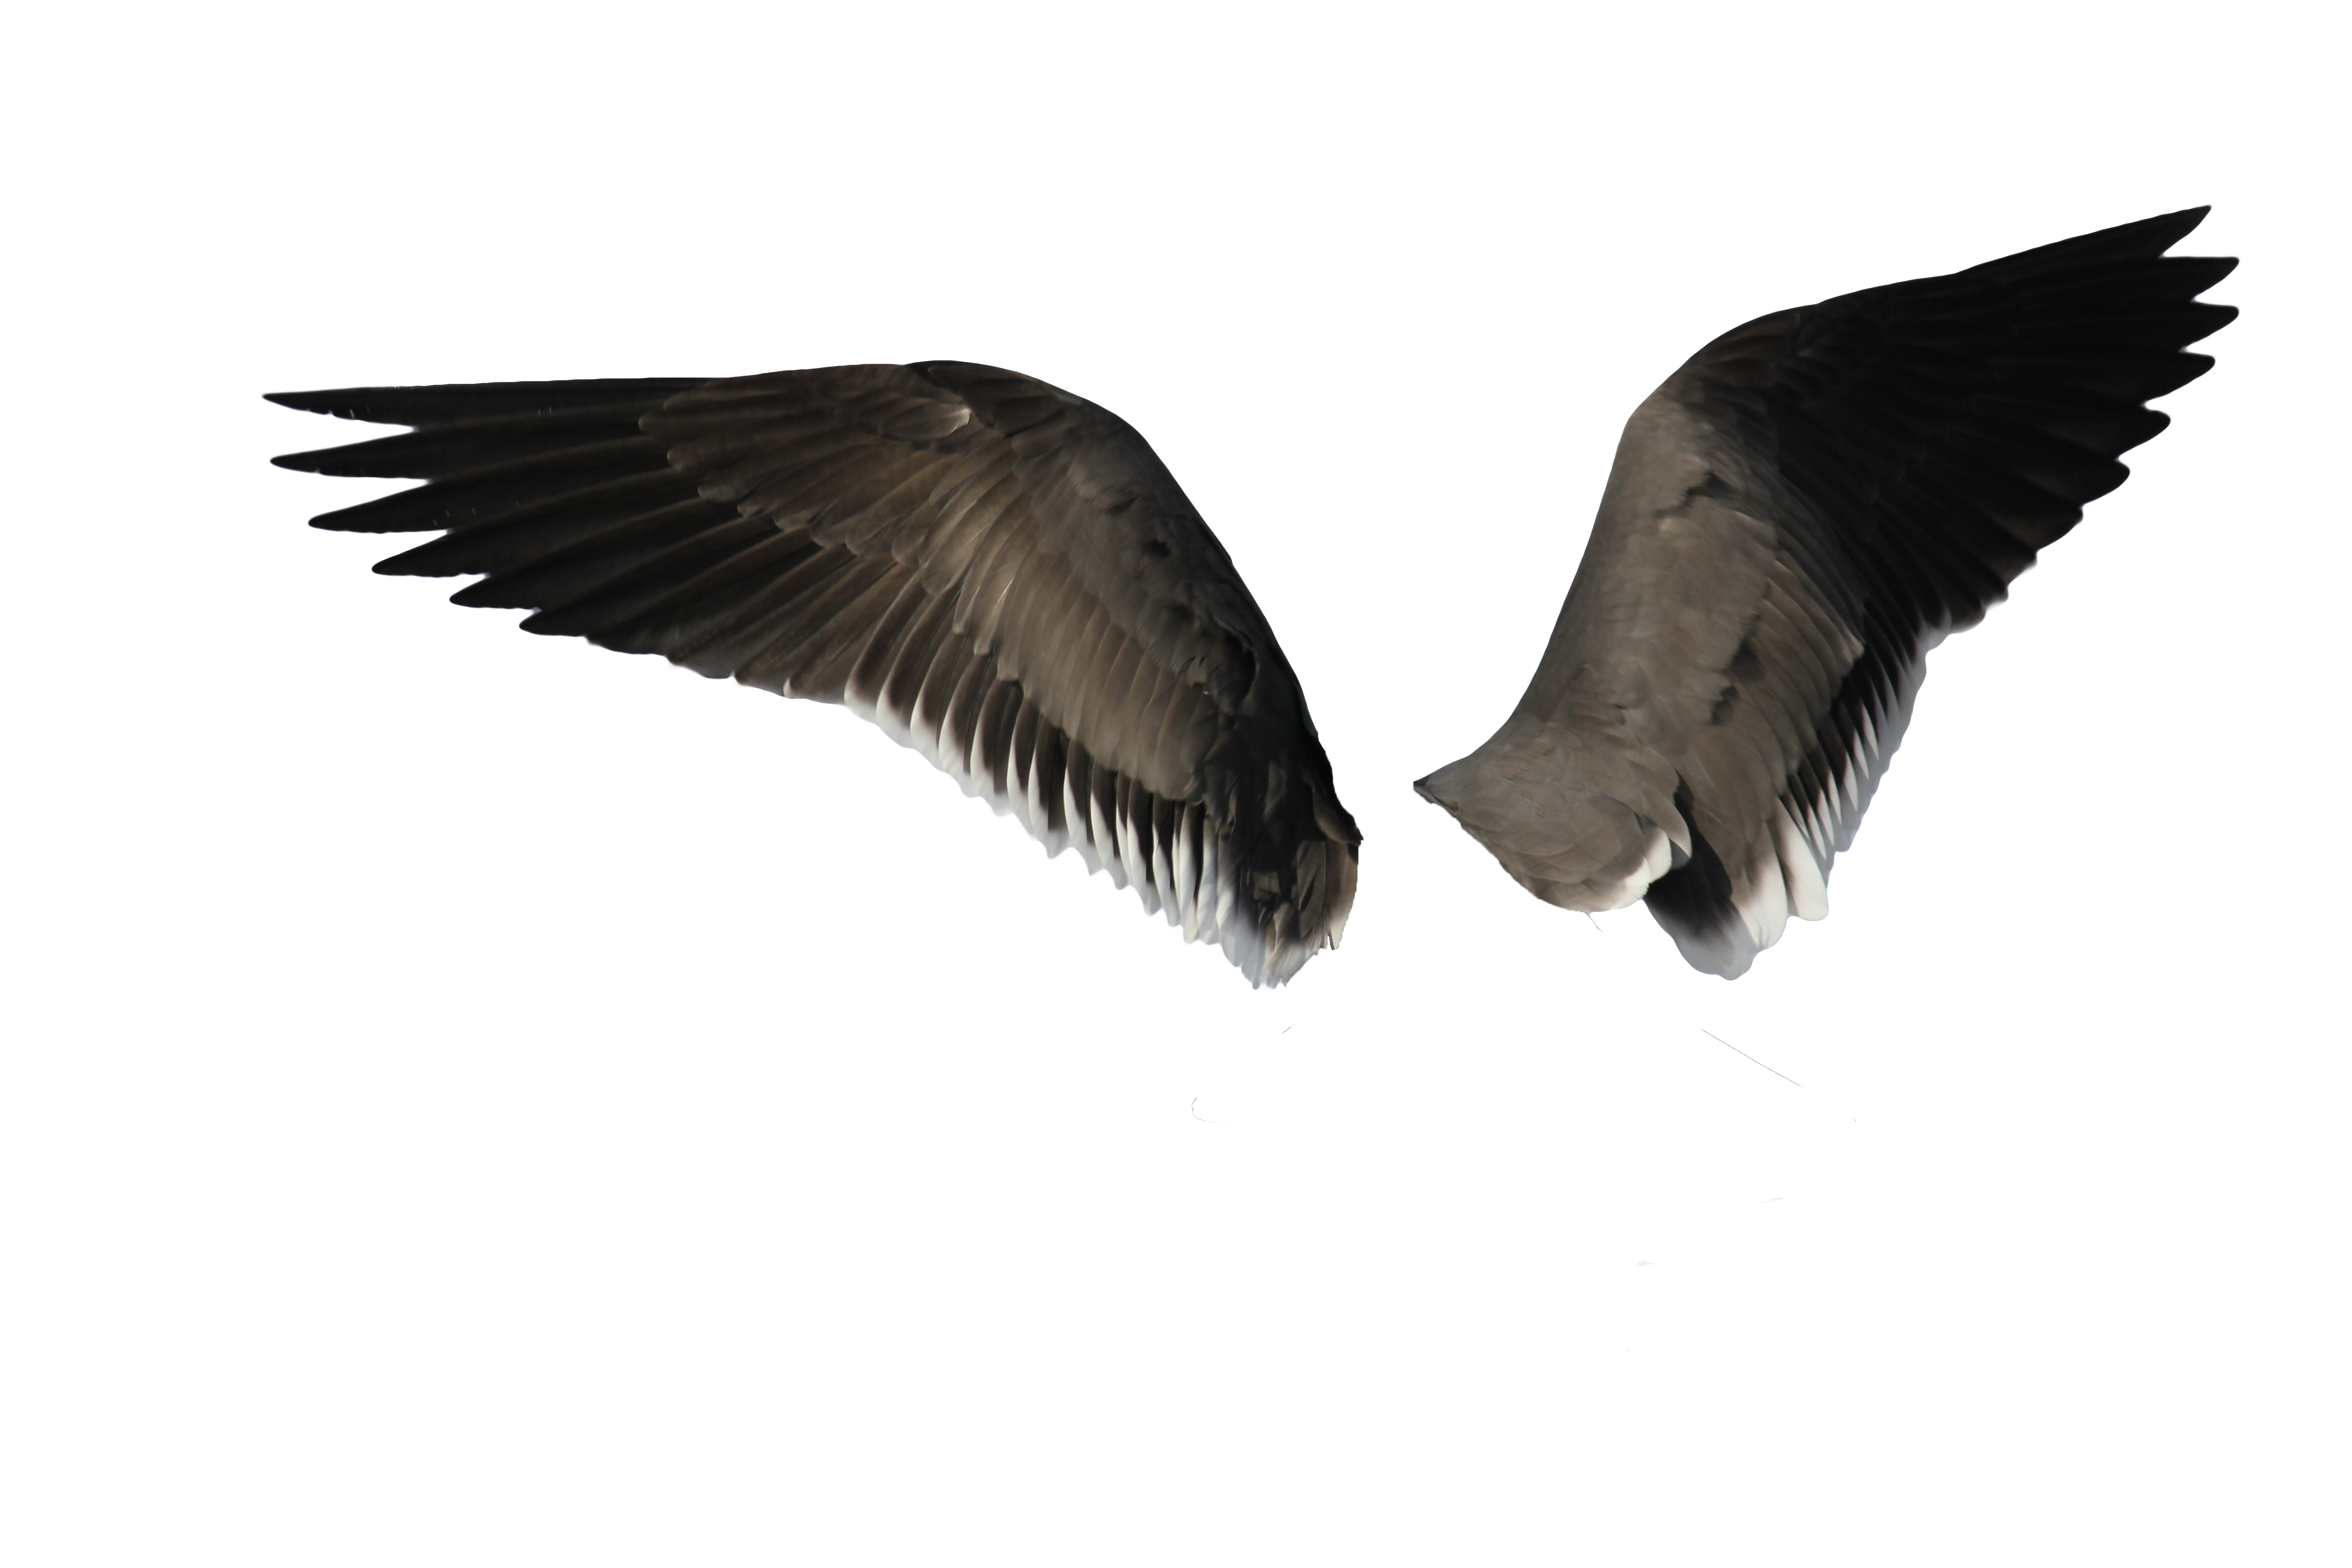 Bird wing png. Wings images free download